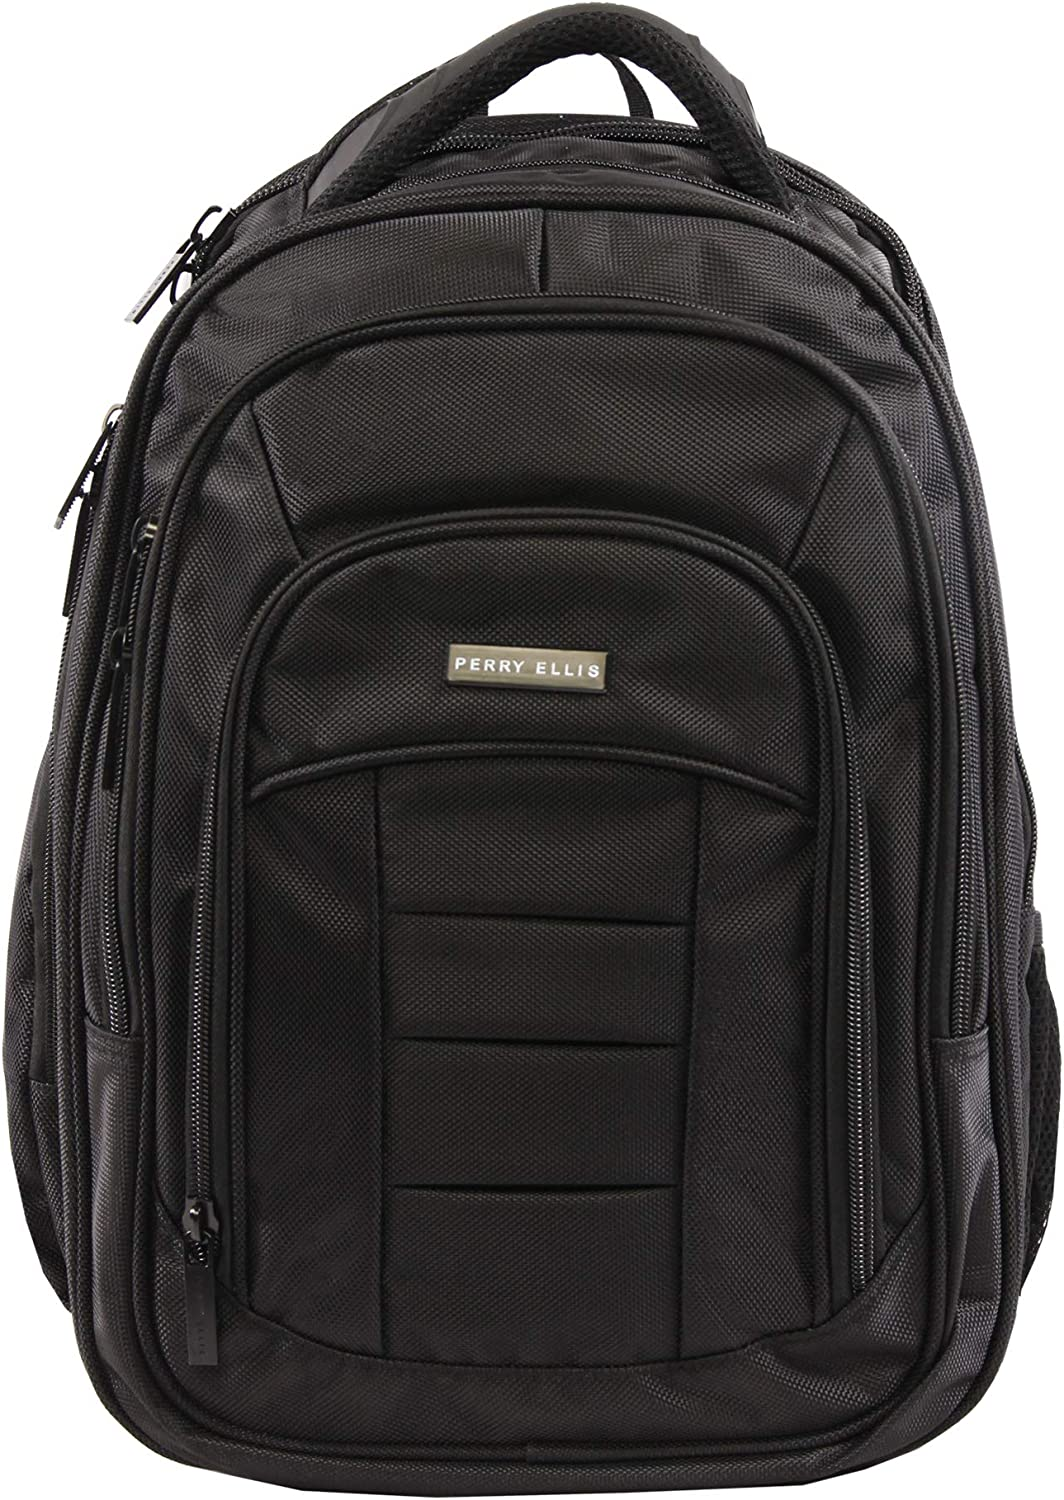 Perry Ellis Men's M150 Business Laptop Backpack, Black, One Size